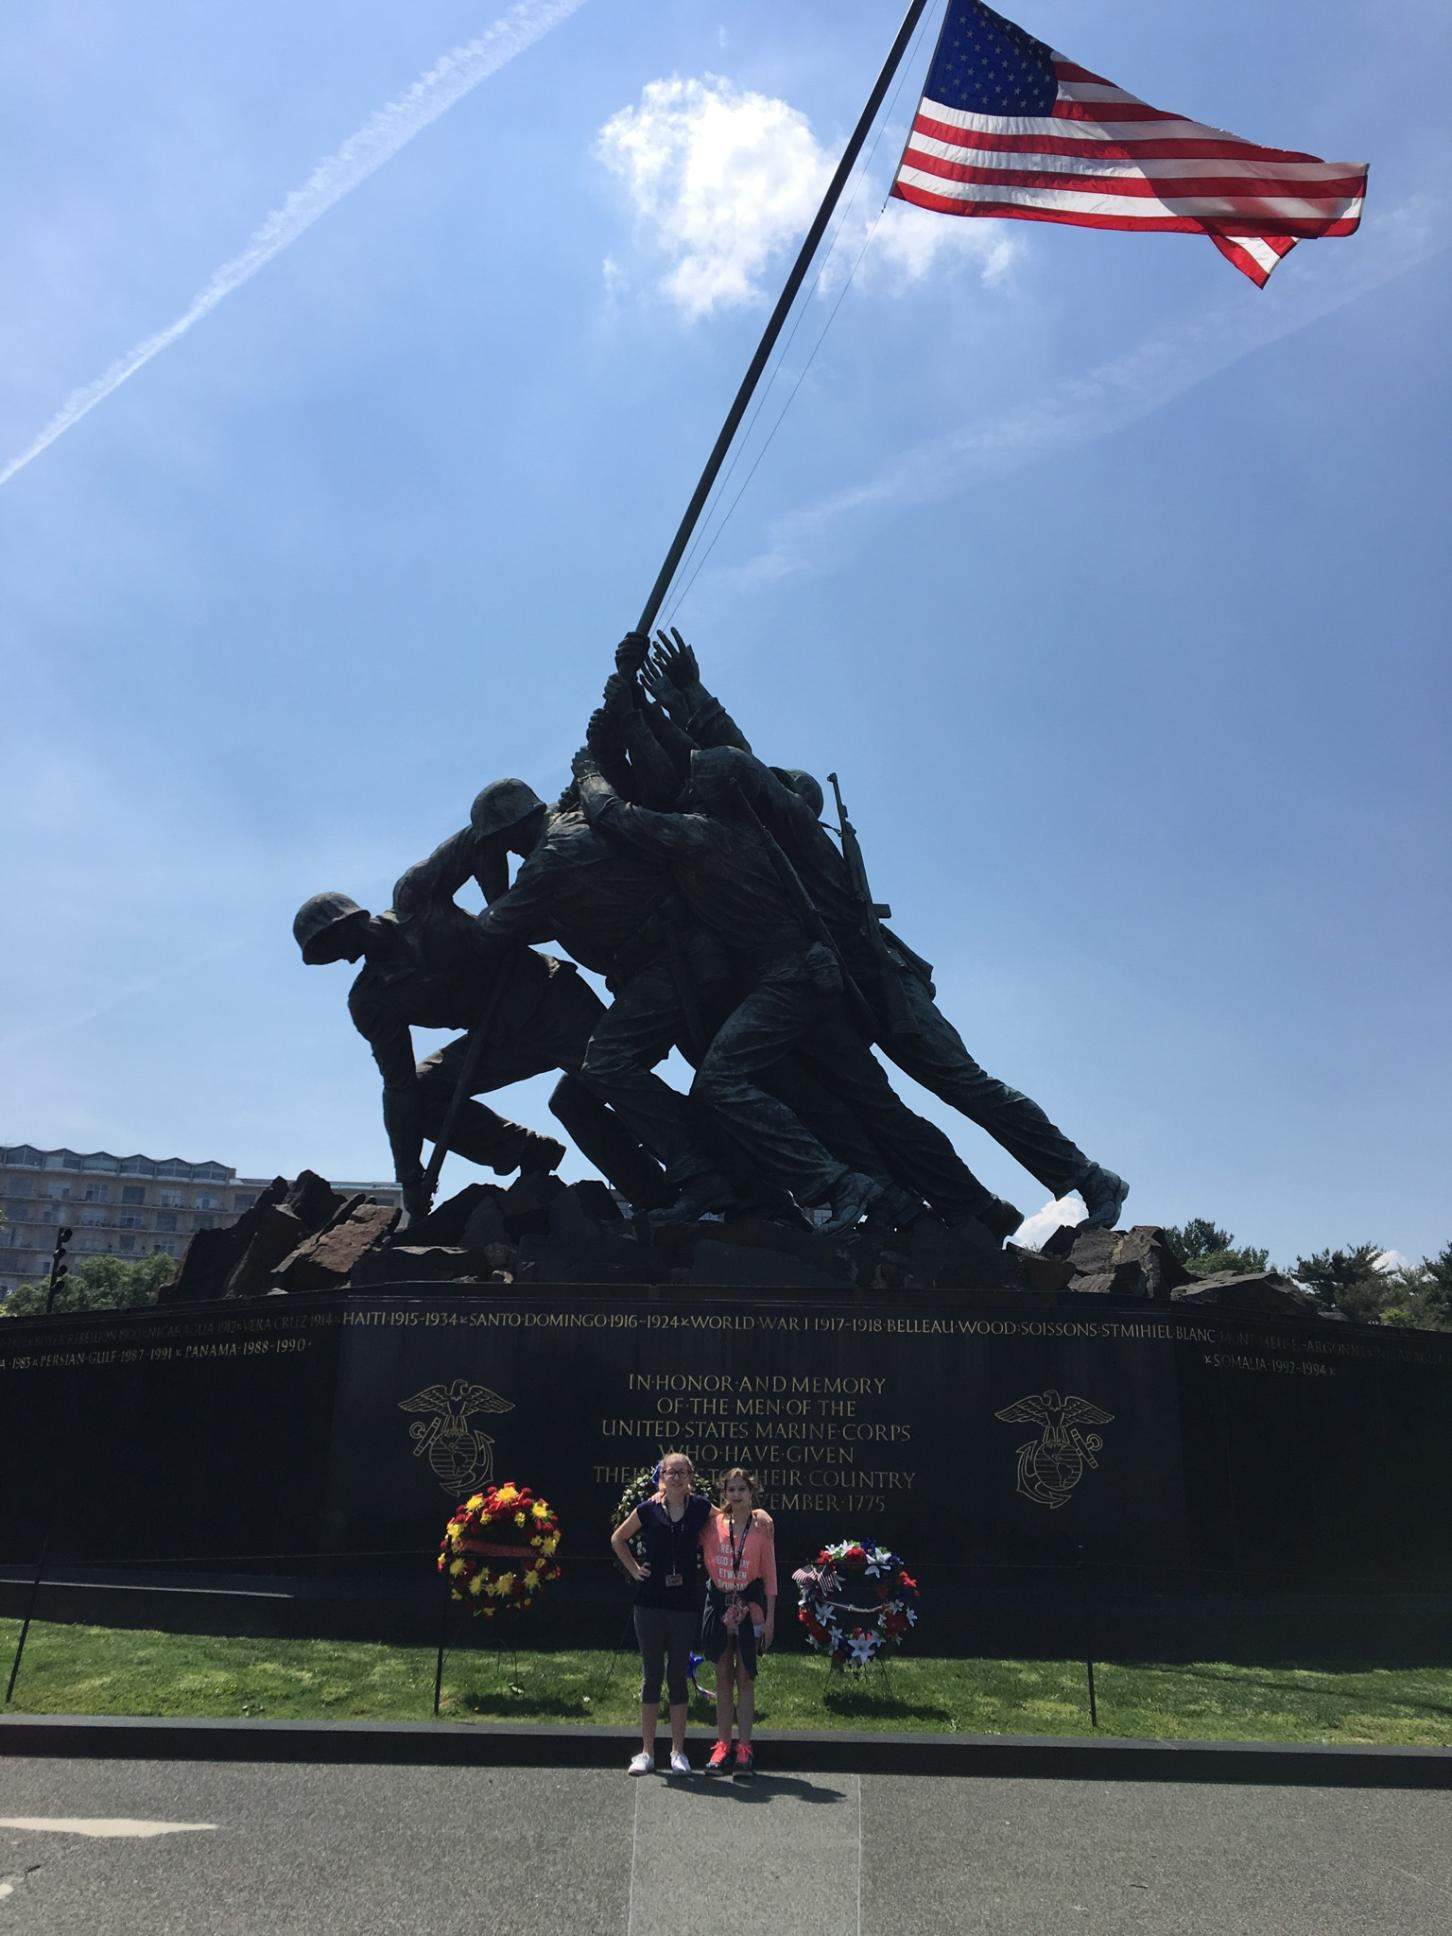 Briaunna Smith and Aubree Cunningham in front of the Iwo Jima Memorial.